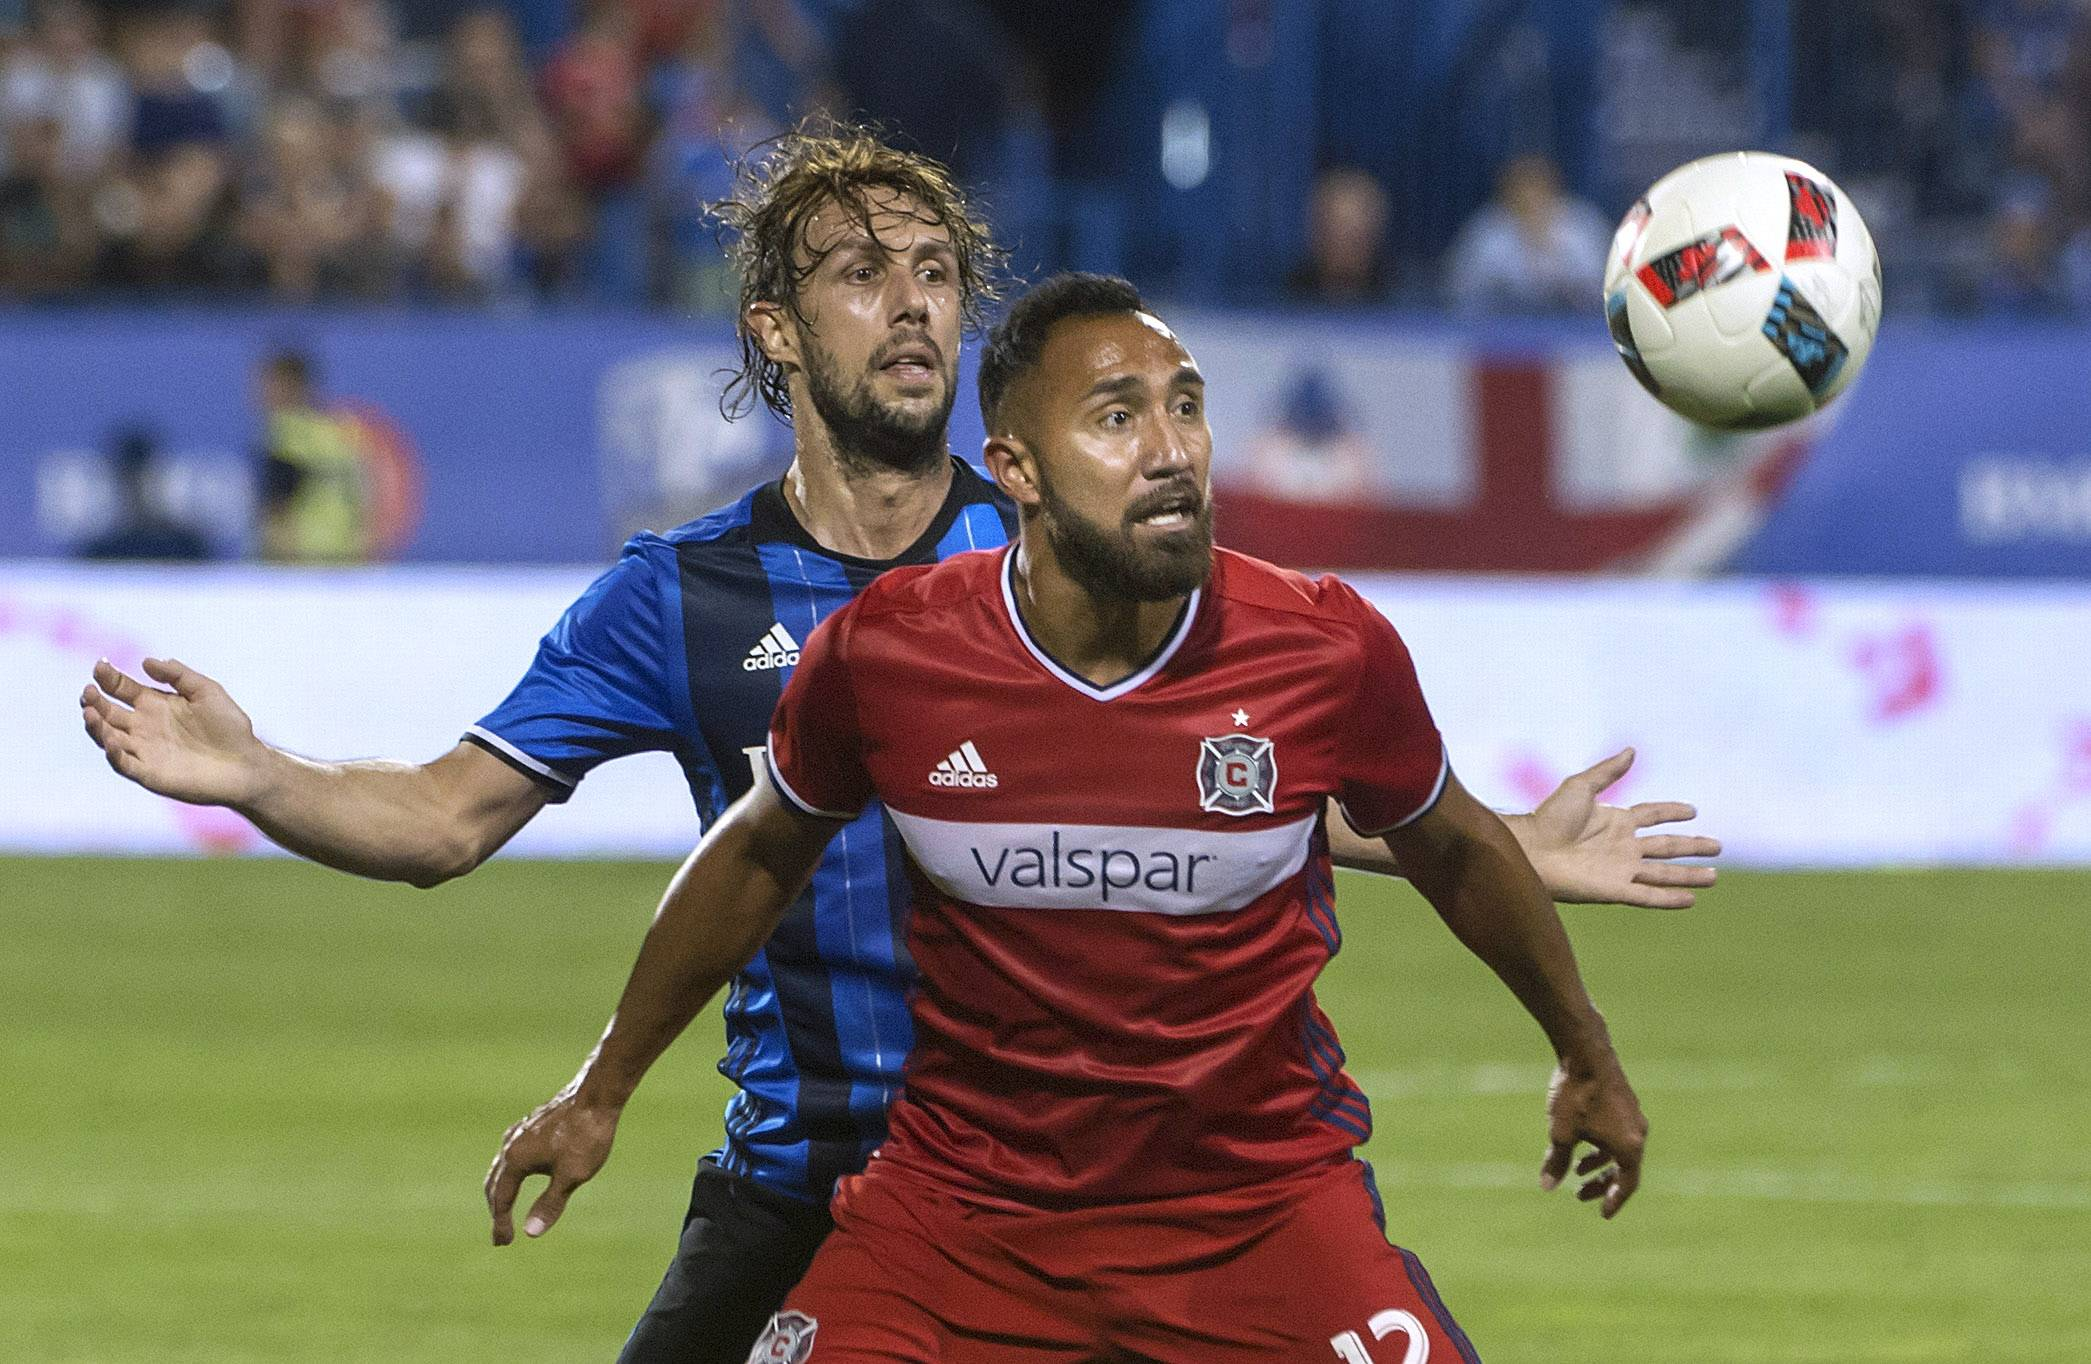 With more depth on the Chicago Fire roster, Arturo Alvarez has played a more limited role so far this season.